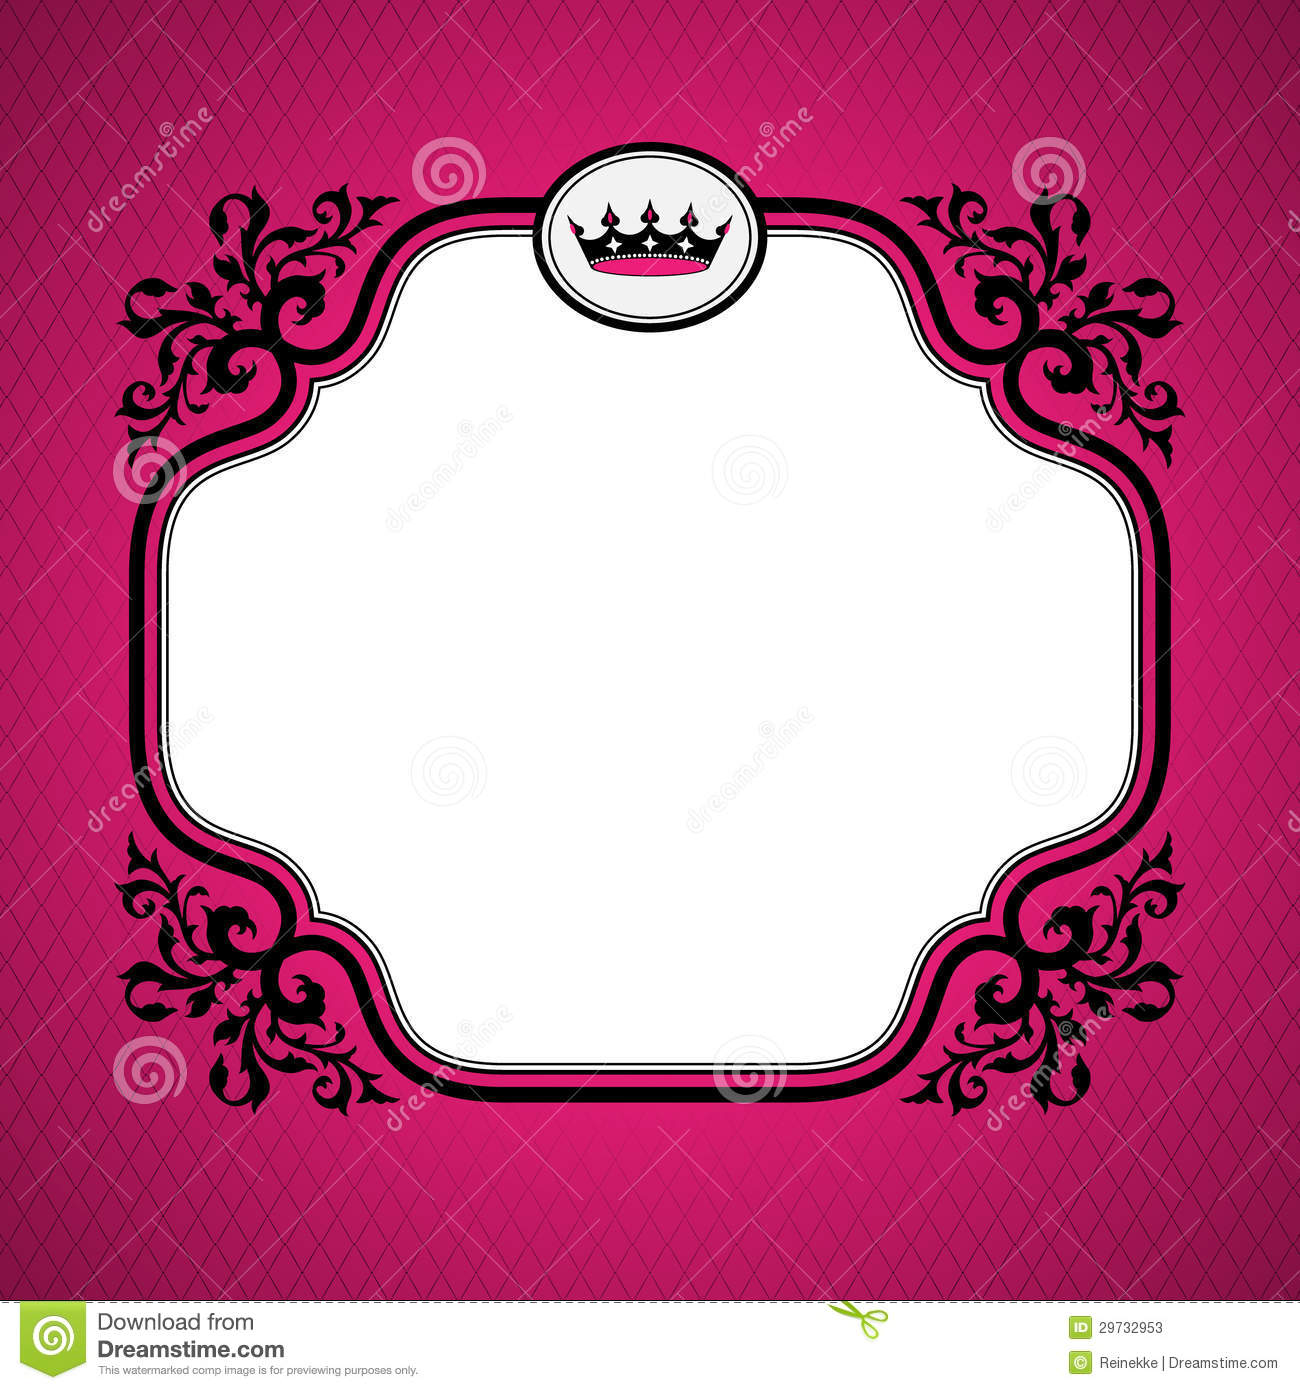 royal pink background - photo #39